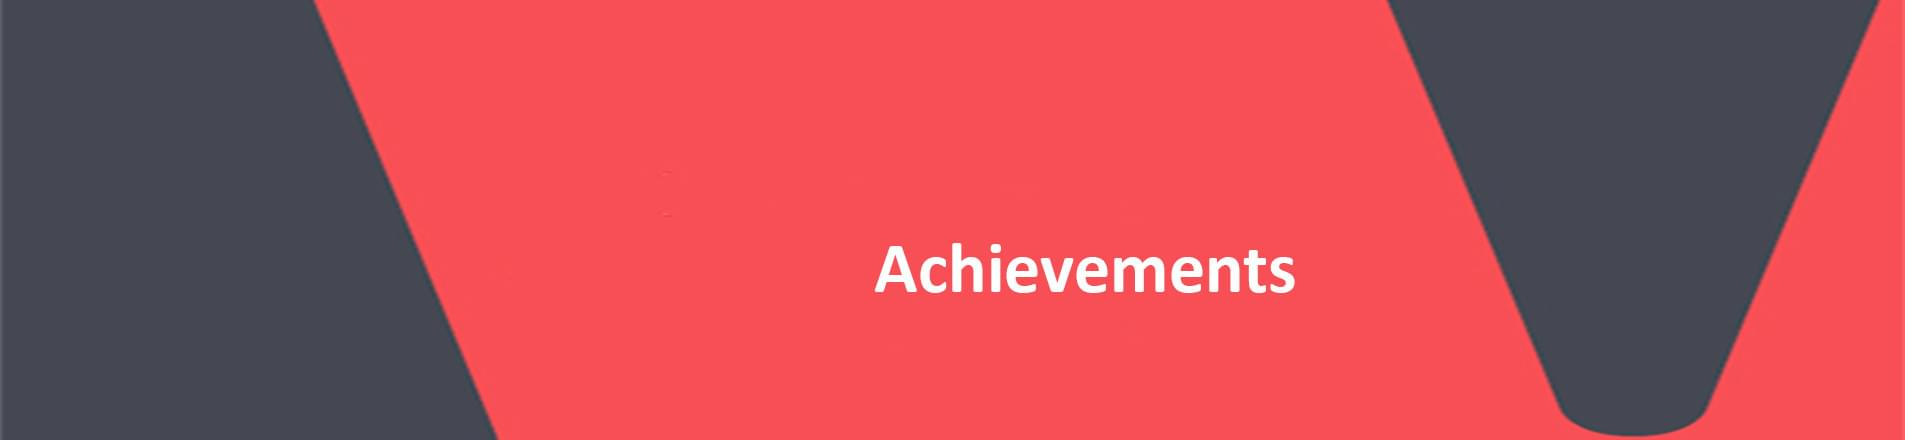 The word 'Achievement' on red VERCIDA background